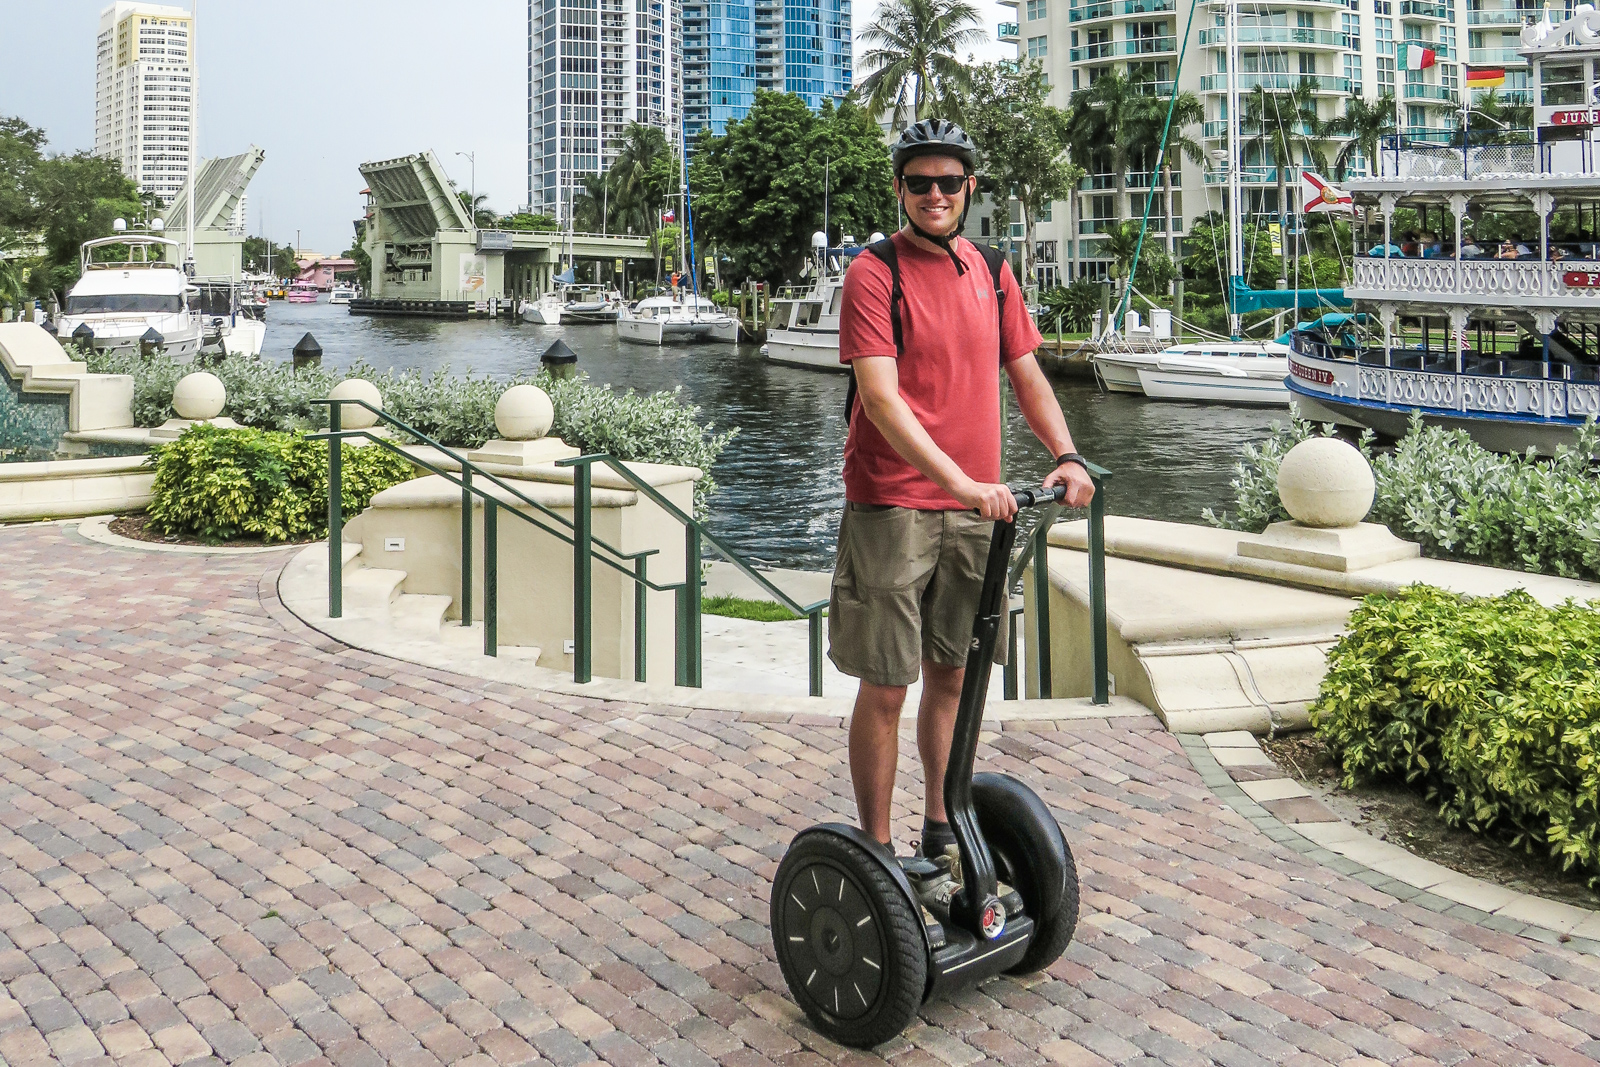 Top things to do in Fort Lauderdale: Segway tour of the Fort Lauderdale tour Riverwalk and Las Olas boulevard.